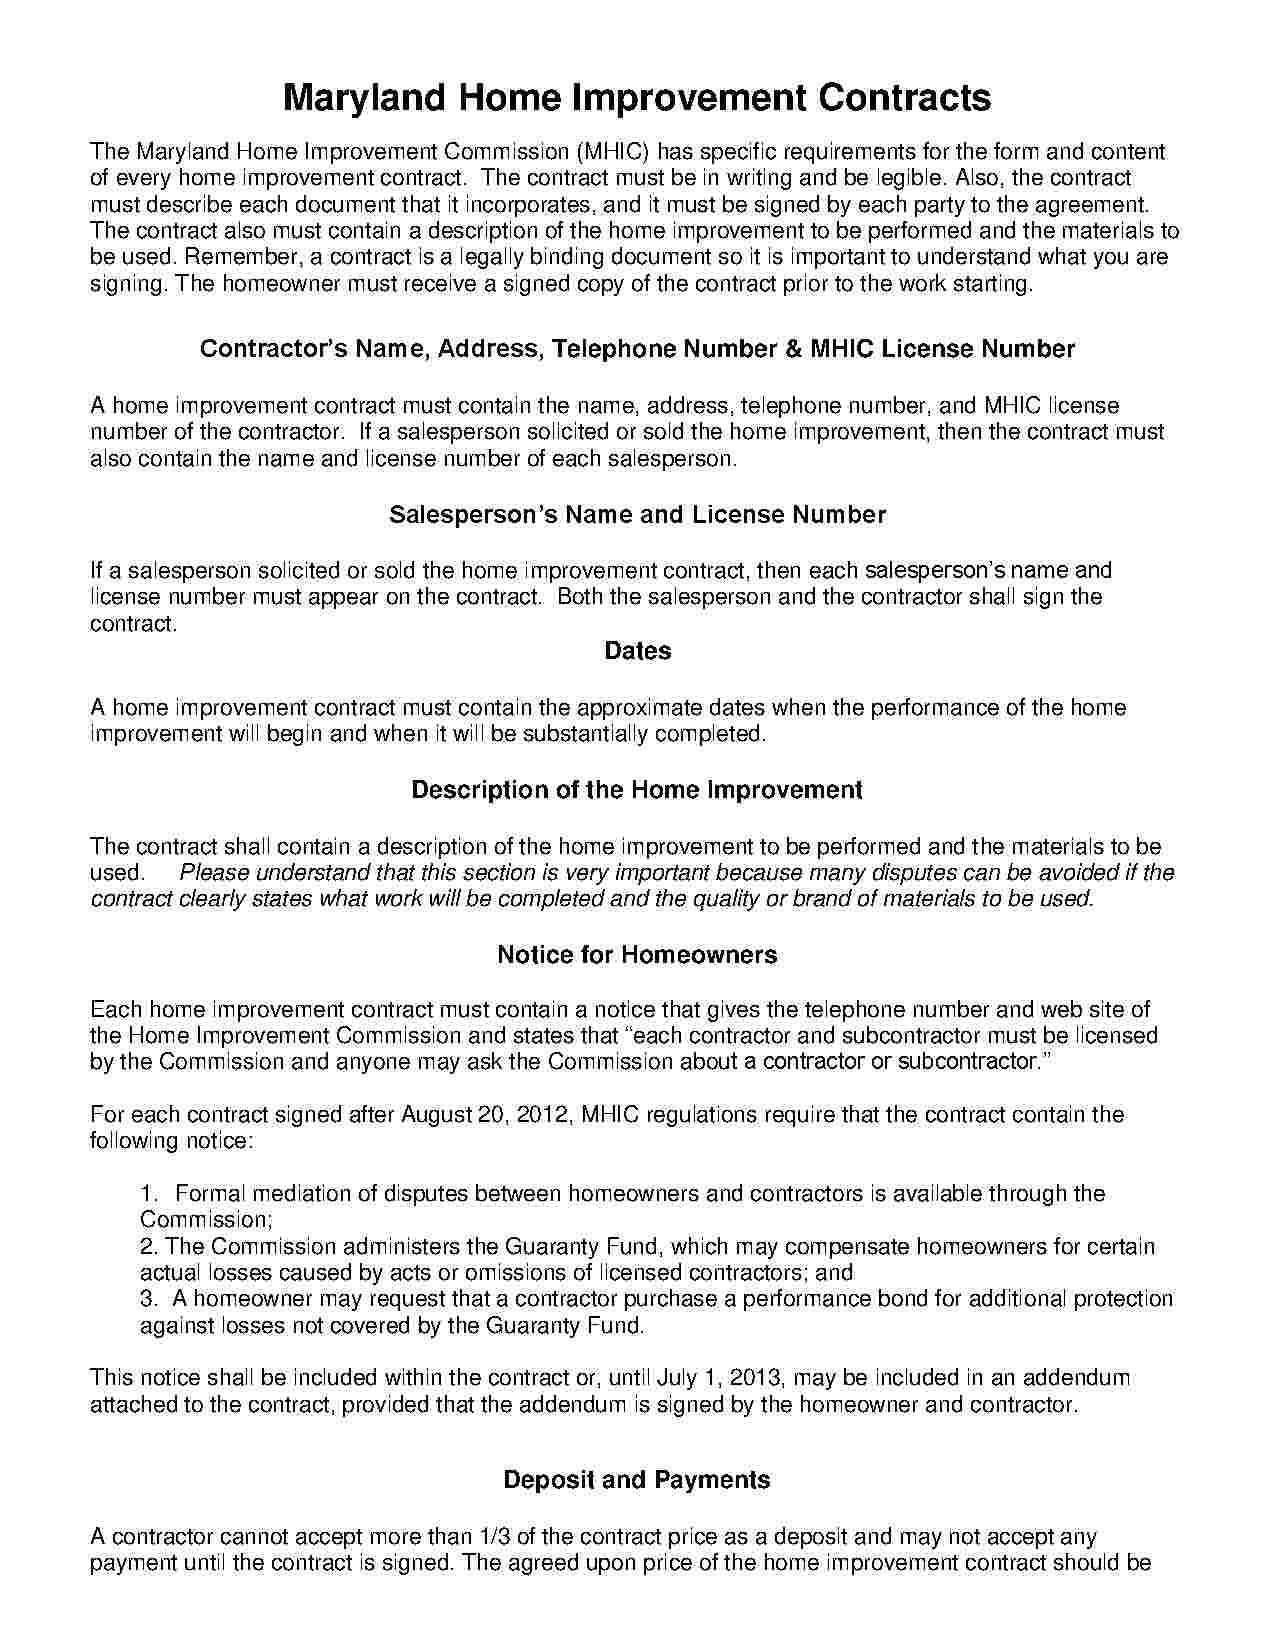 Home Improvement Contract Template Download Home Improvement Contract Style 18 Template for